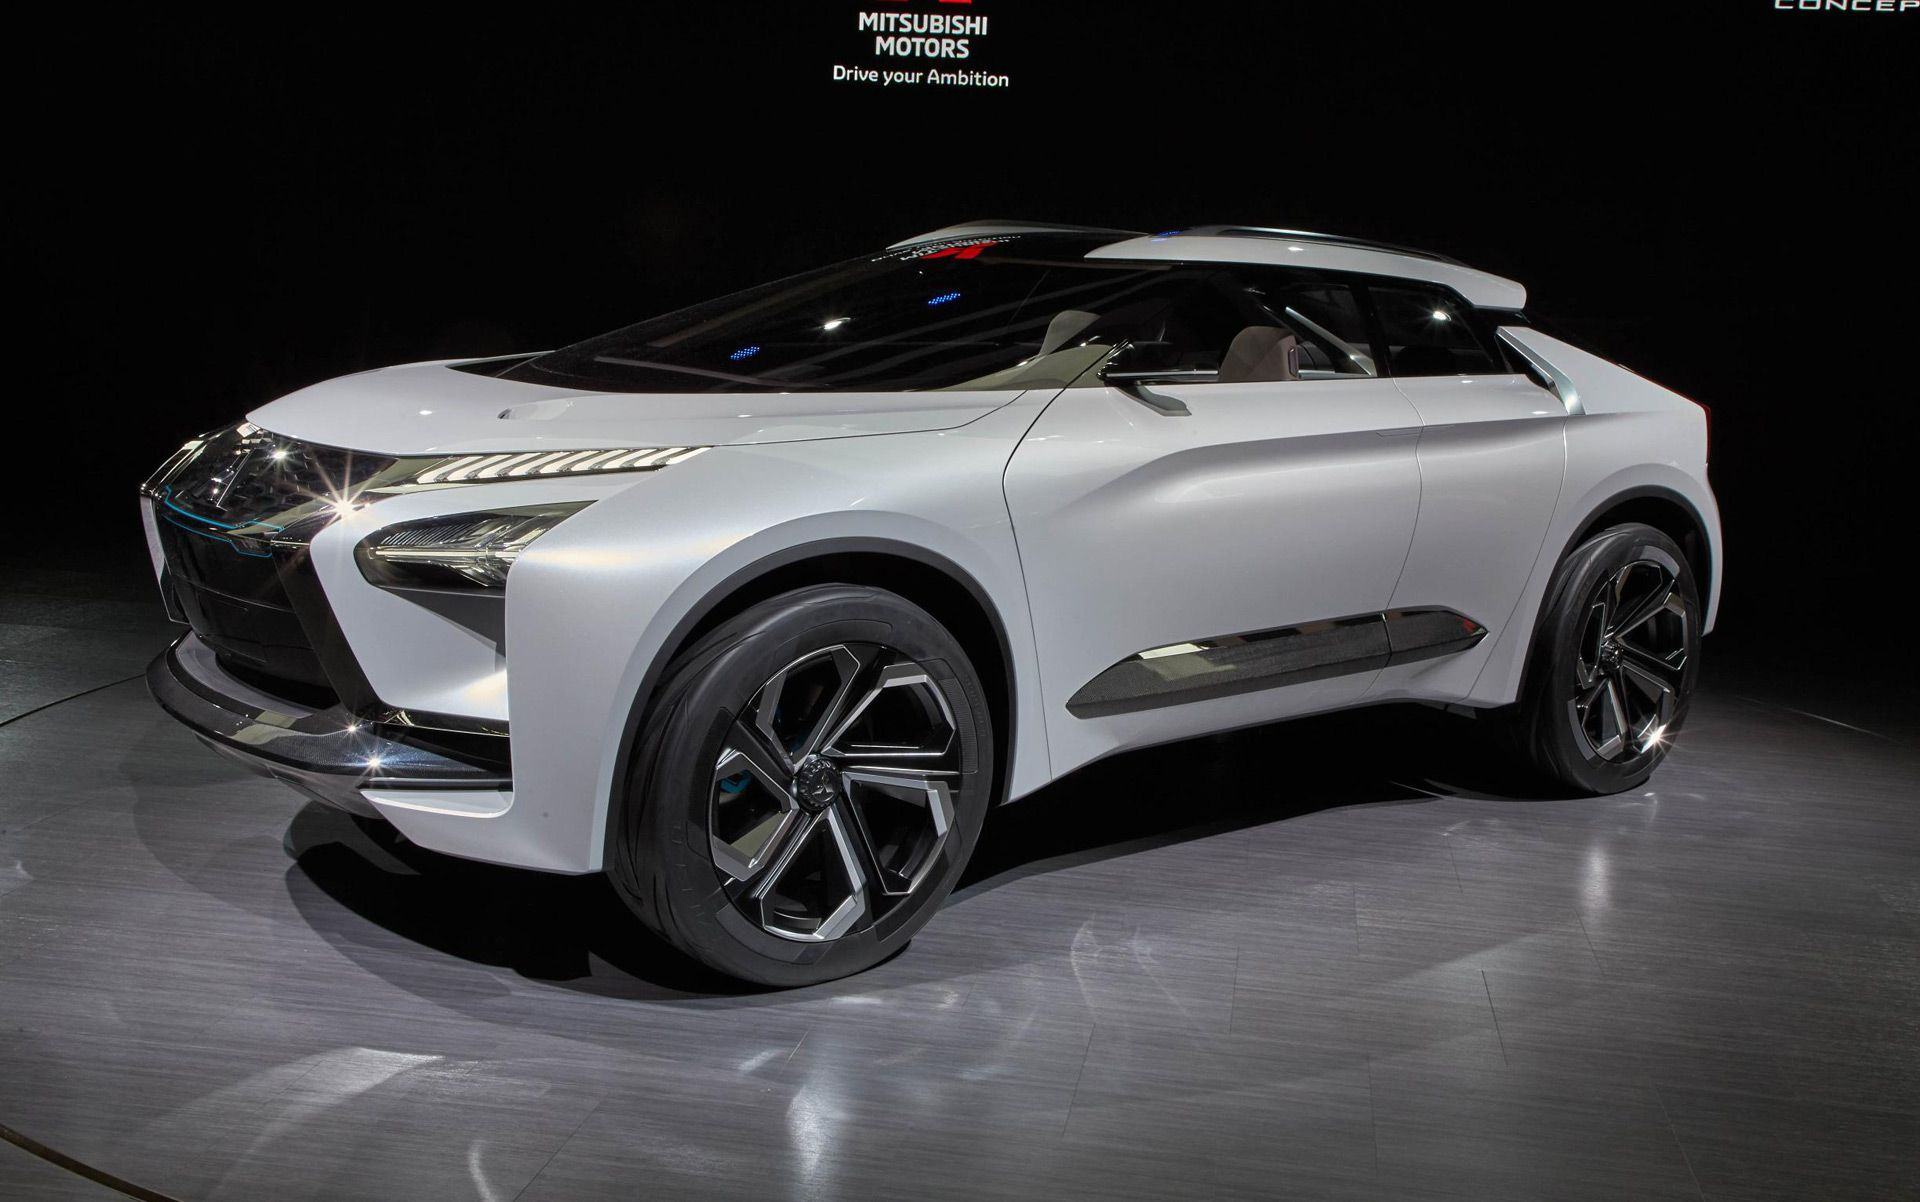 Mitsubishi E Evolution Concept Electric Suv For Tokyo Motor Show Tokyo Motor Show Sporty Suv Used Cars Under 5000